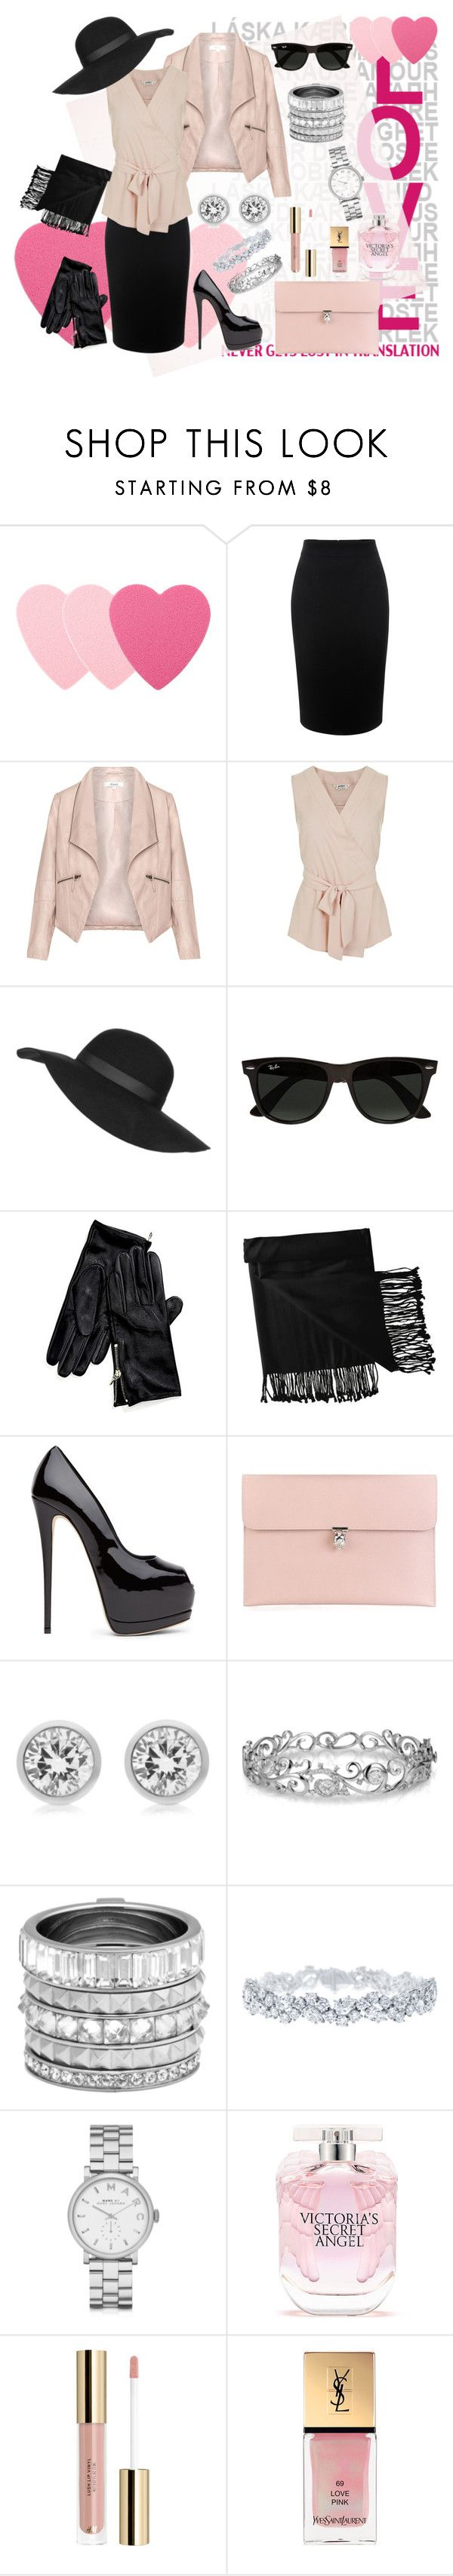 """""""pretty pink"""" by pretty-girl81 on Polyvore featuring moda, Sephora Collection, Alexander McQueen, Zizzi, Miss Selfridge, Topshop, Ray-Ban, Tommy Hilfiger, New Directions e Michael Kors"""